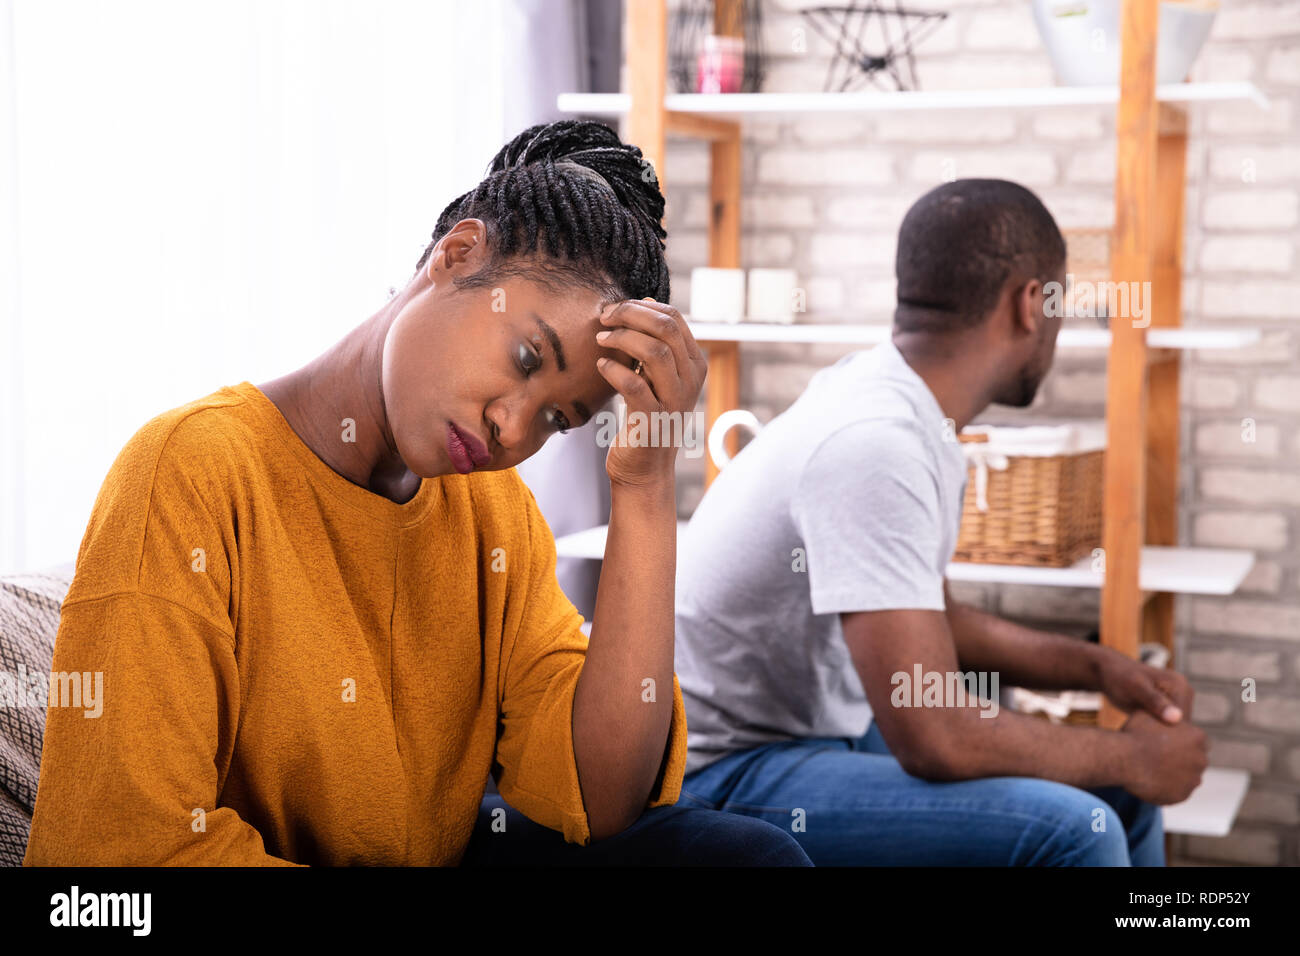 Upset Young African Couple Sitting On Sofa Ignoring Each Other Stock Photo